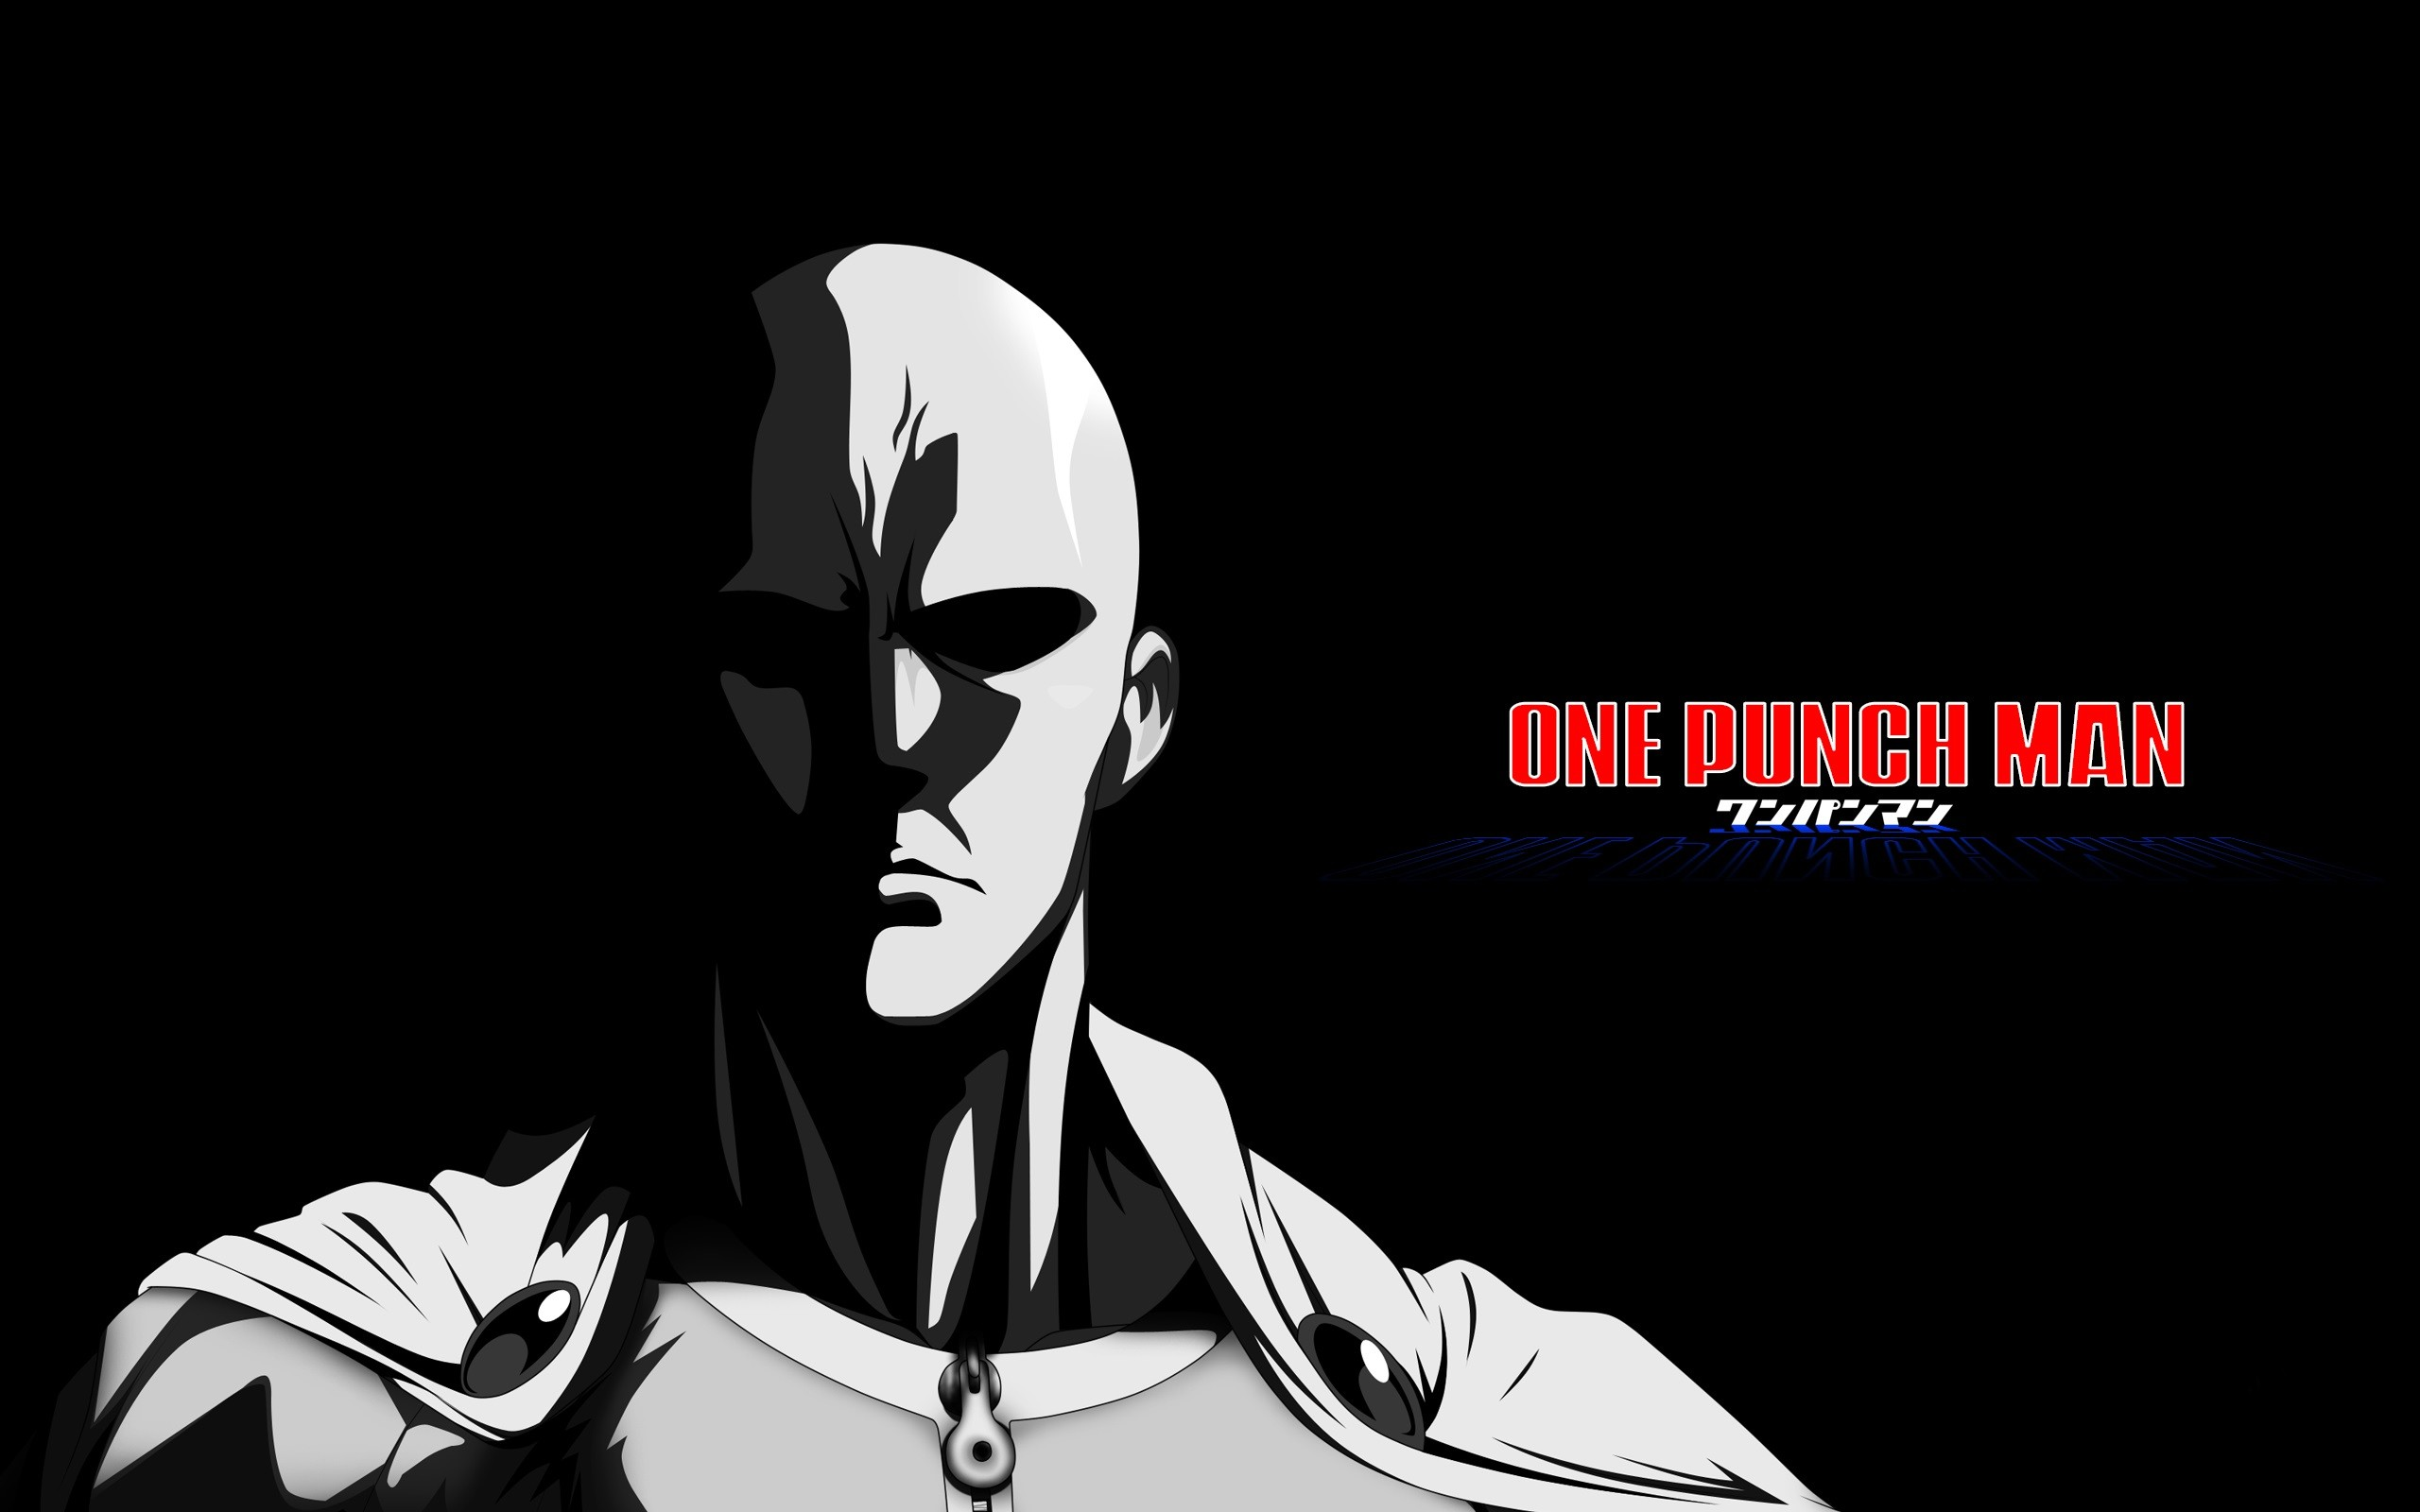 One Punch Man Wallpaper 1920x1080 (74+ images)